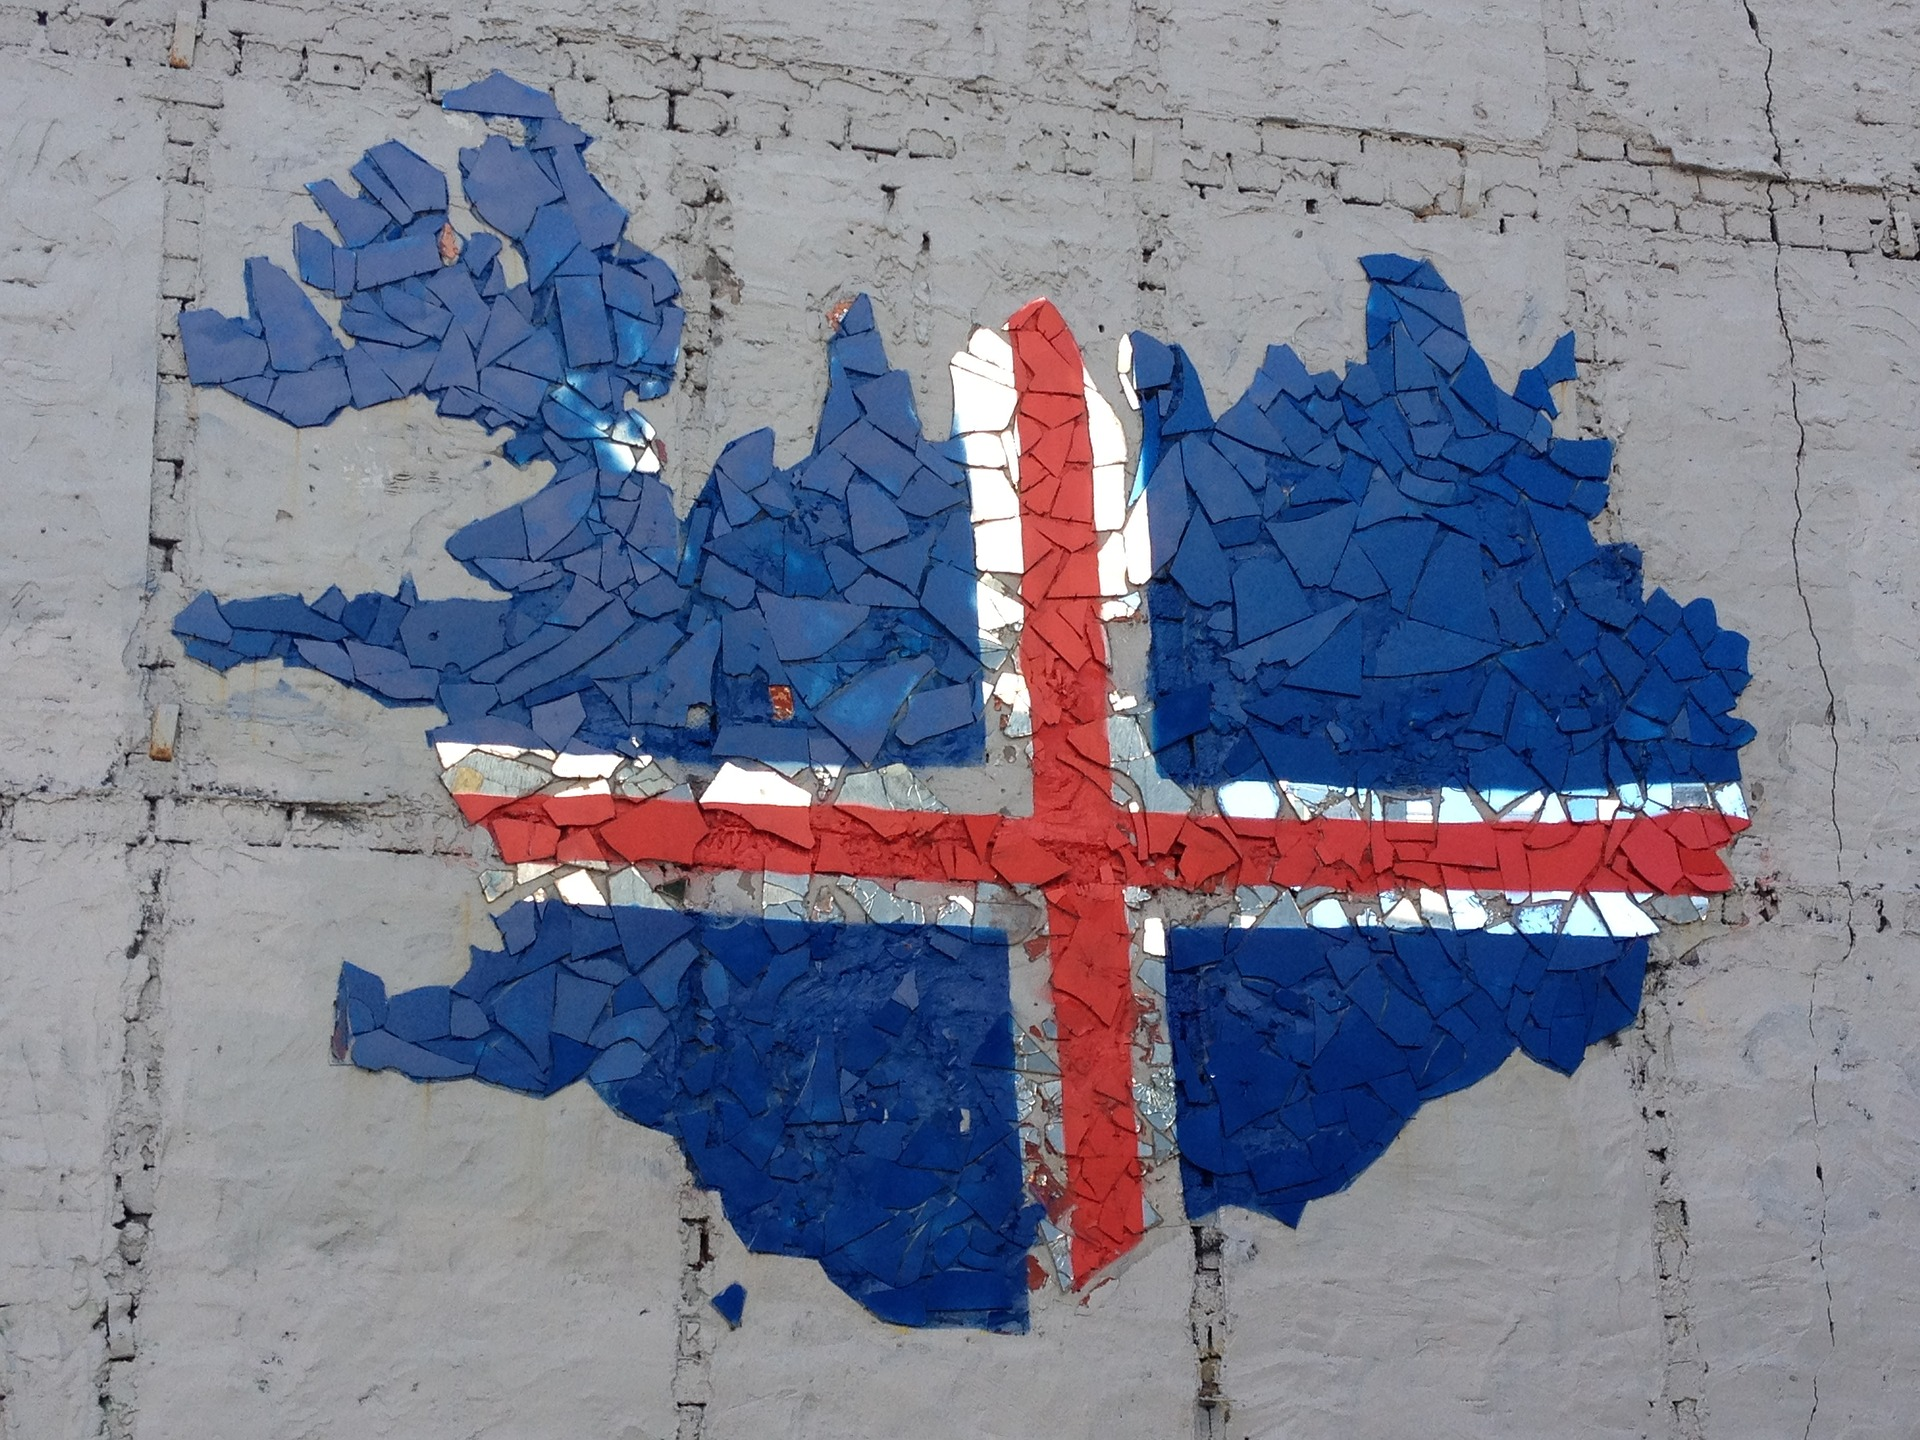 street art representing the icelandic flag on a wall in Reykjavik Iceland